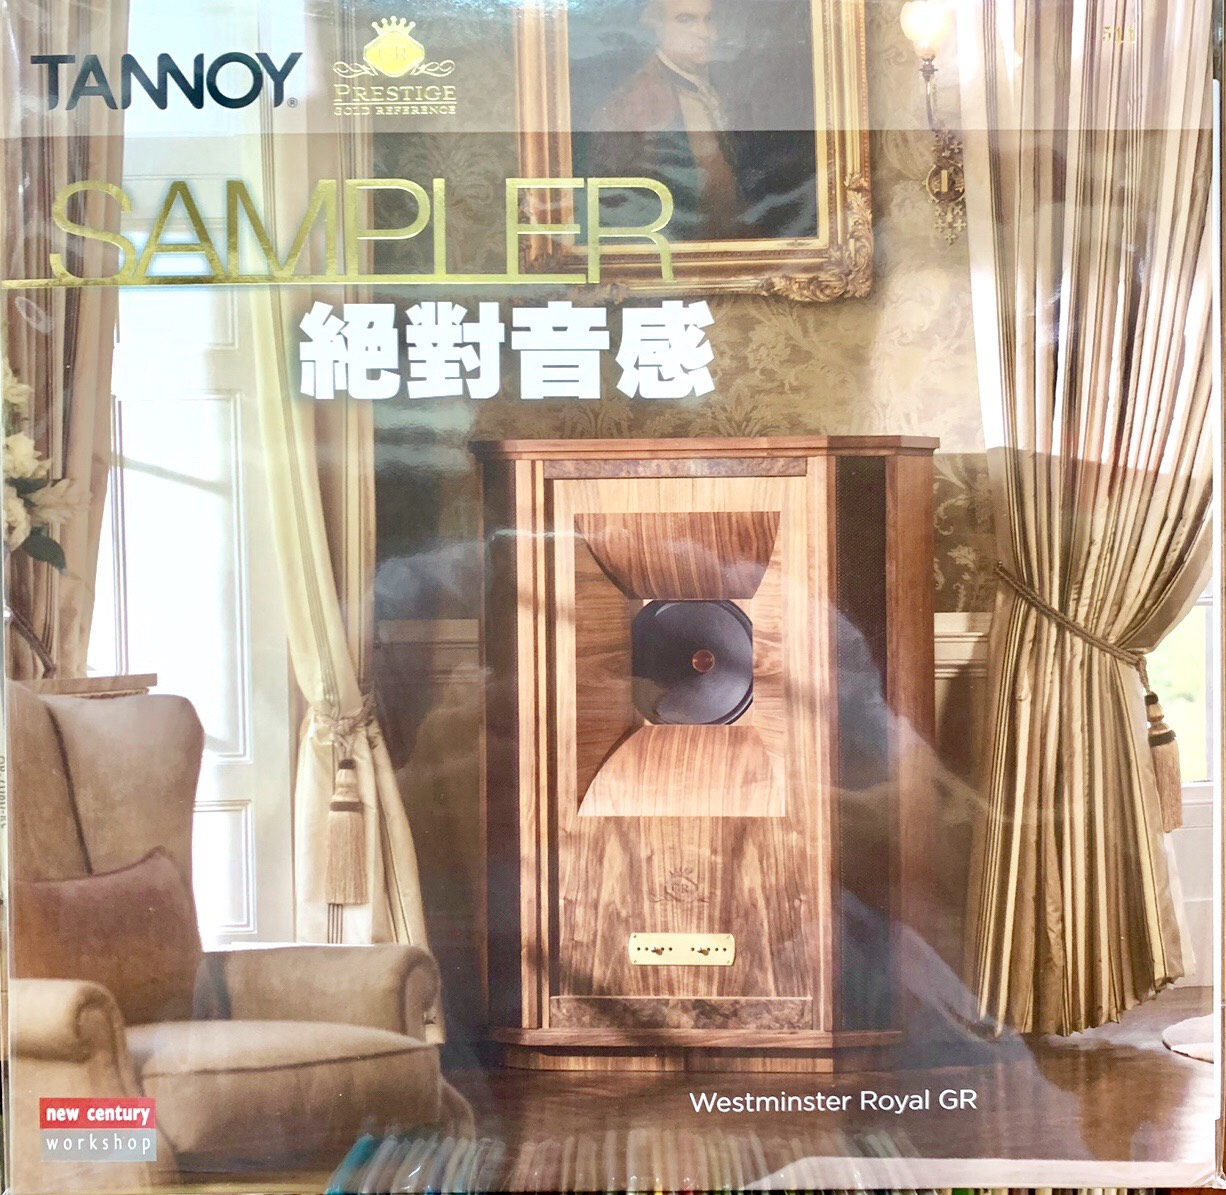 dia-than-lp-tannoy-sampler